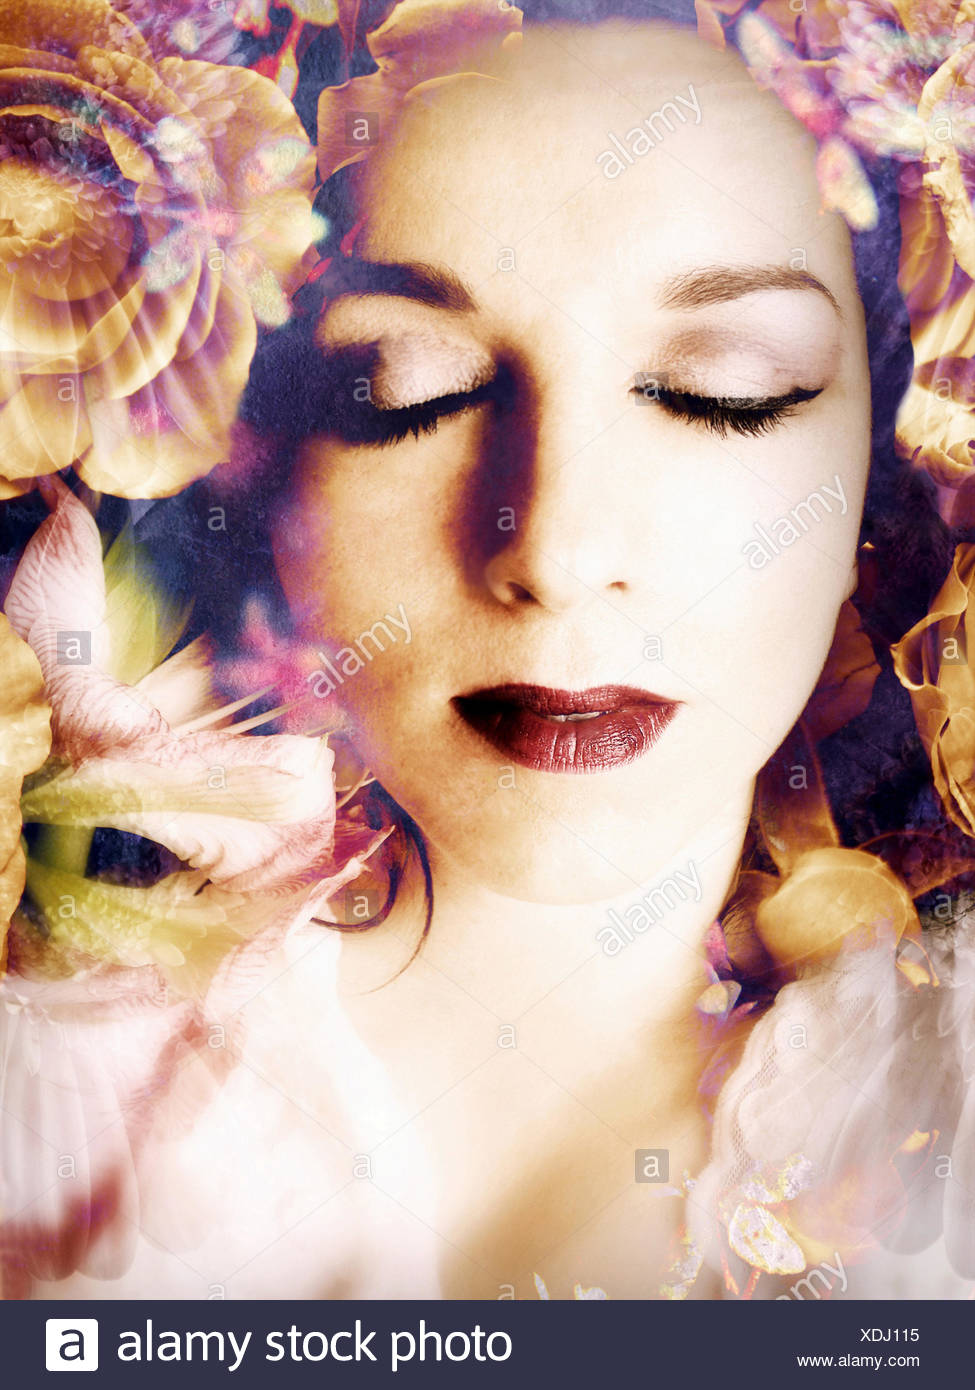 poetic montage of a portrait with flowers, - Stock Image